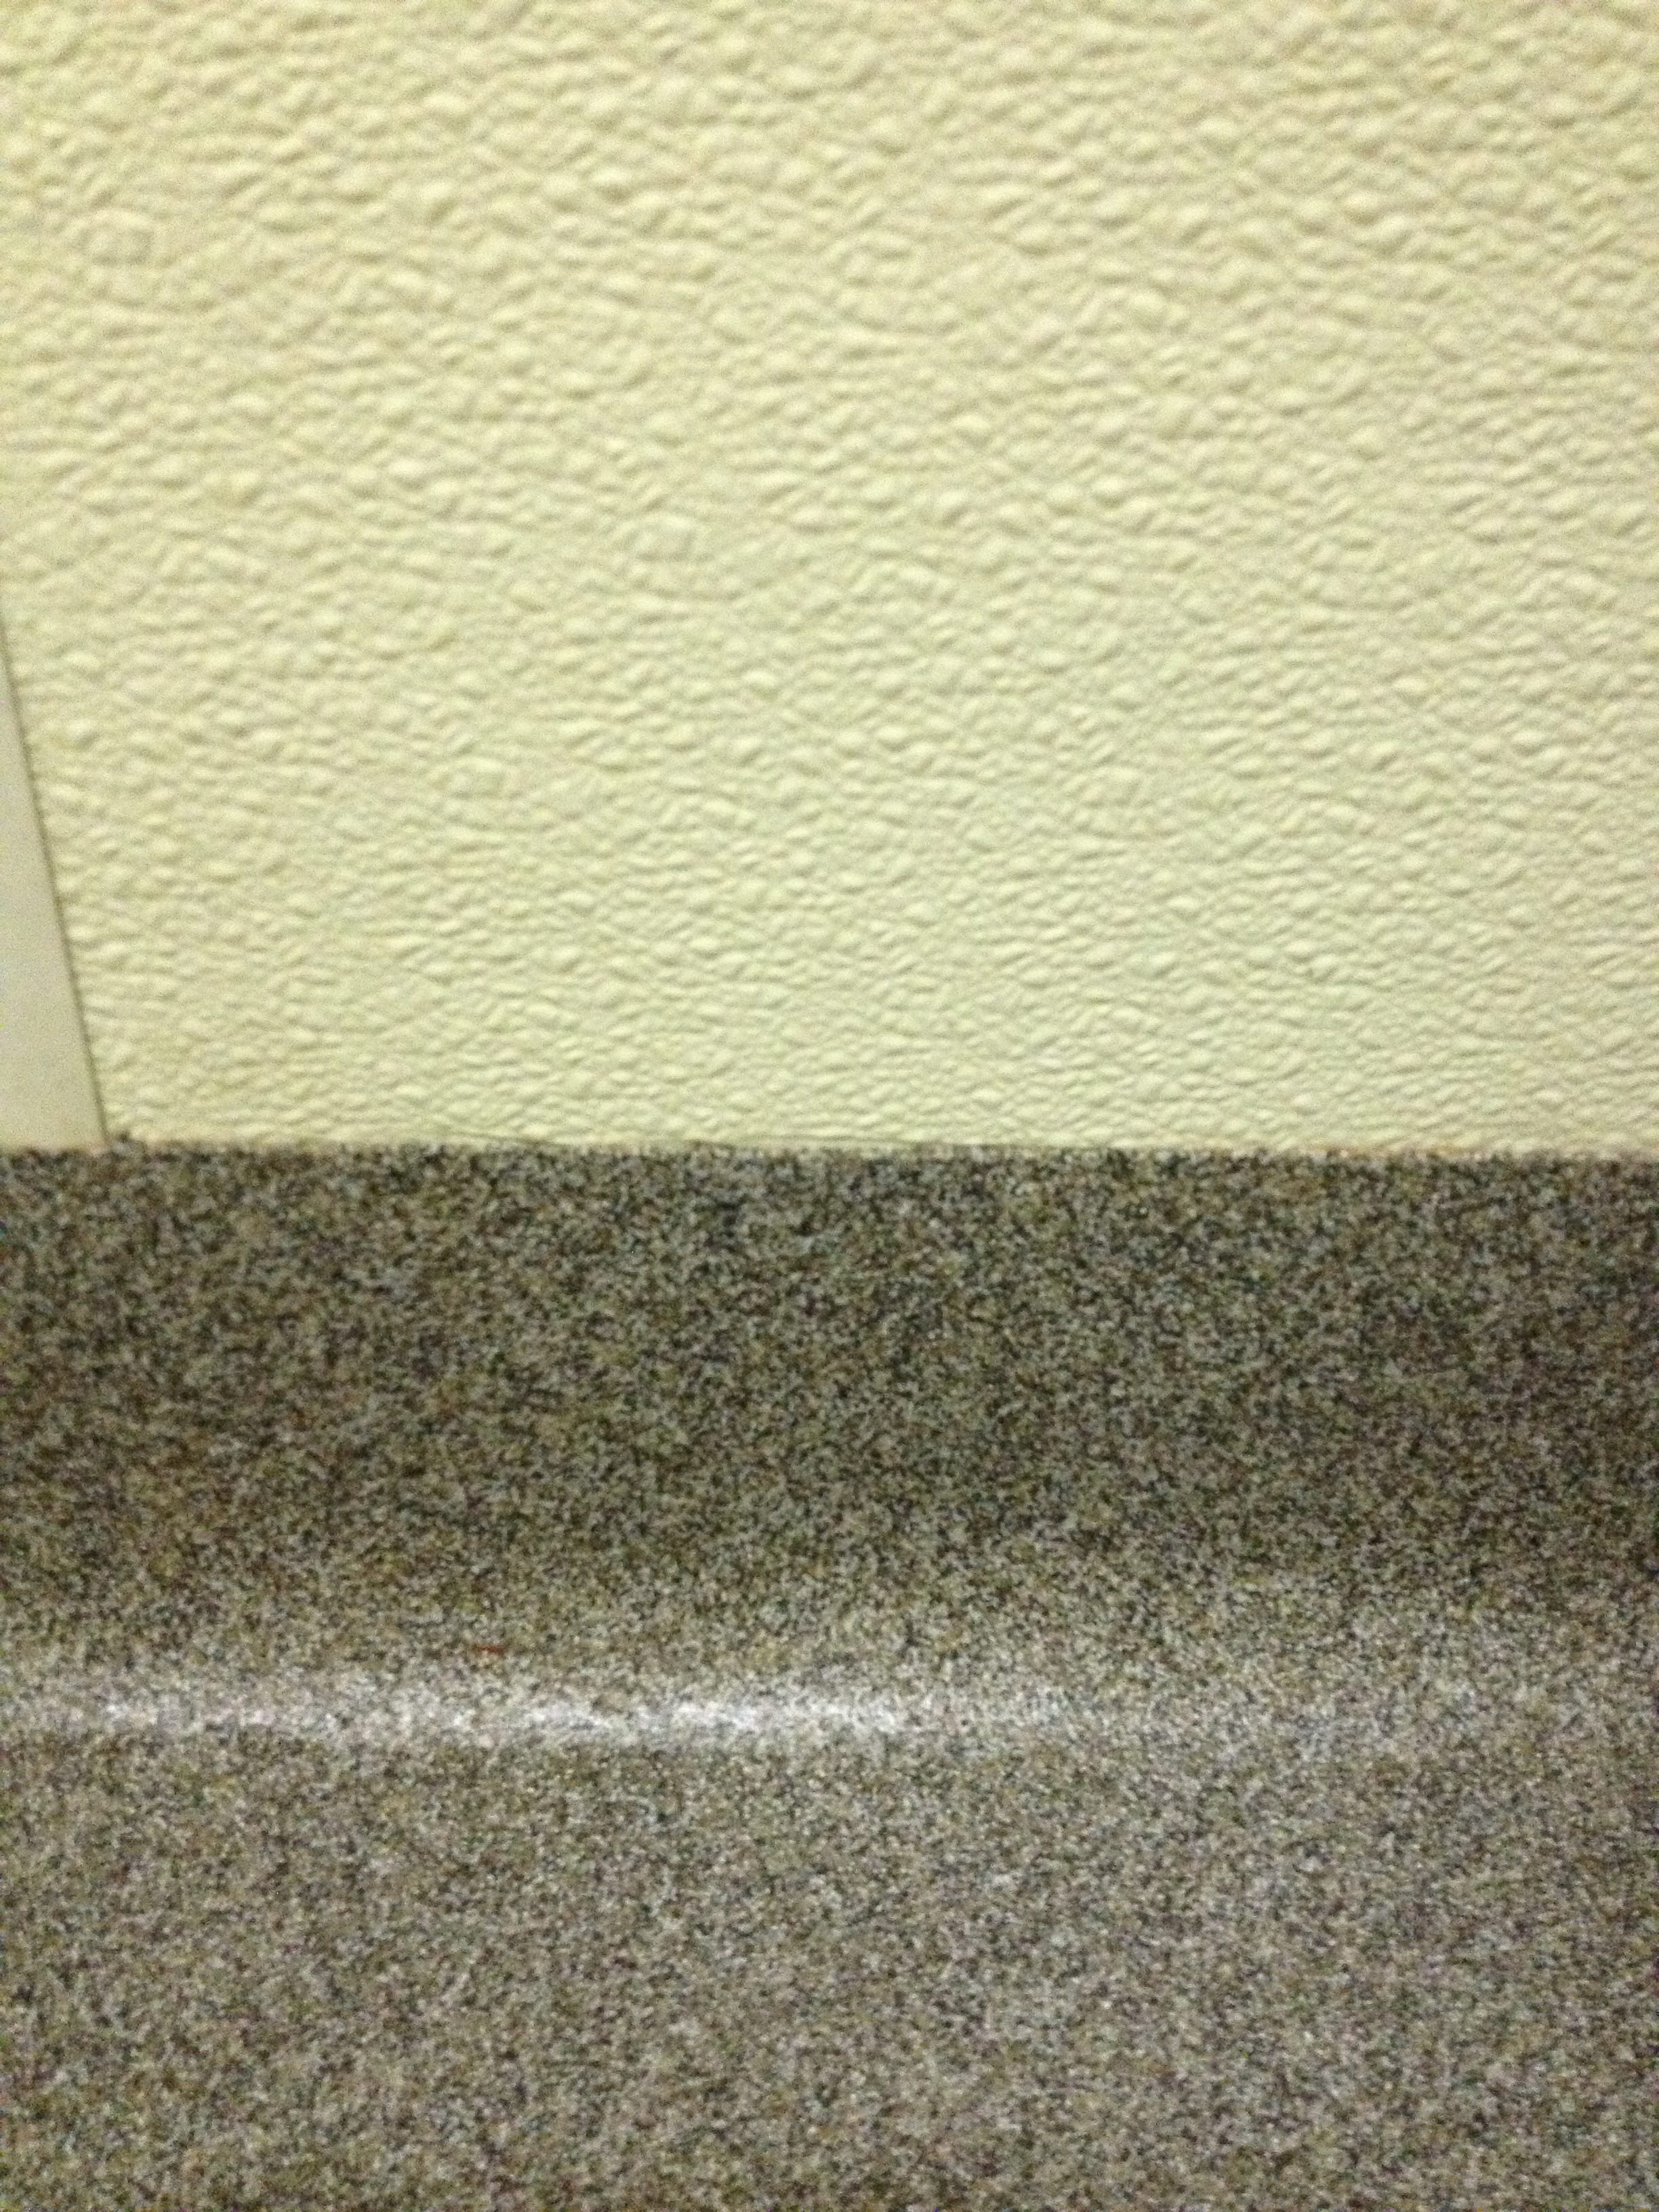 Urethane Cement Institutional Floor Covering Experts Extreme